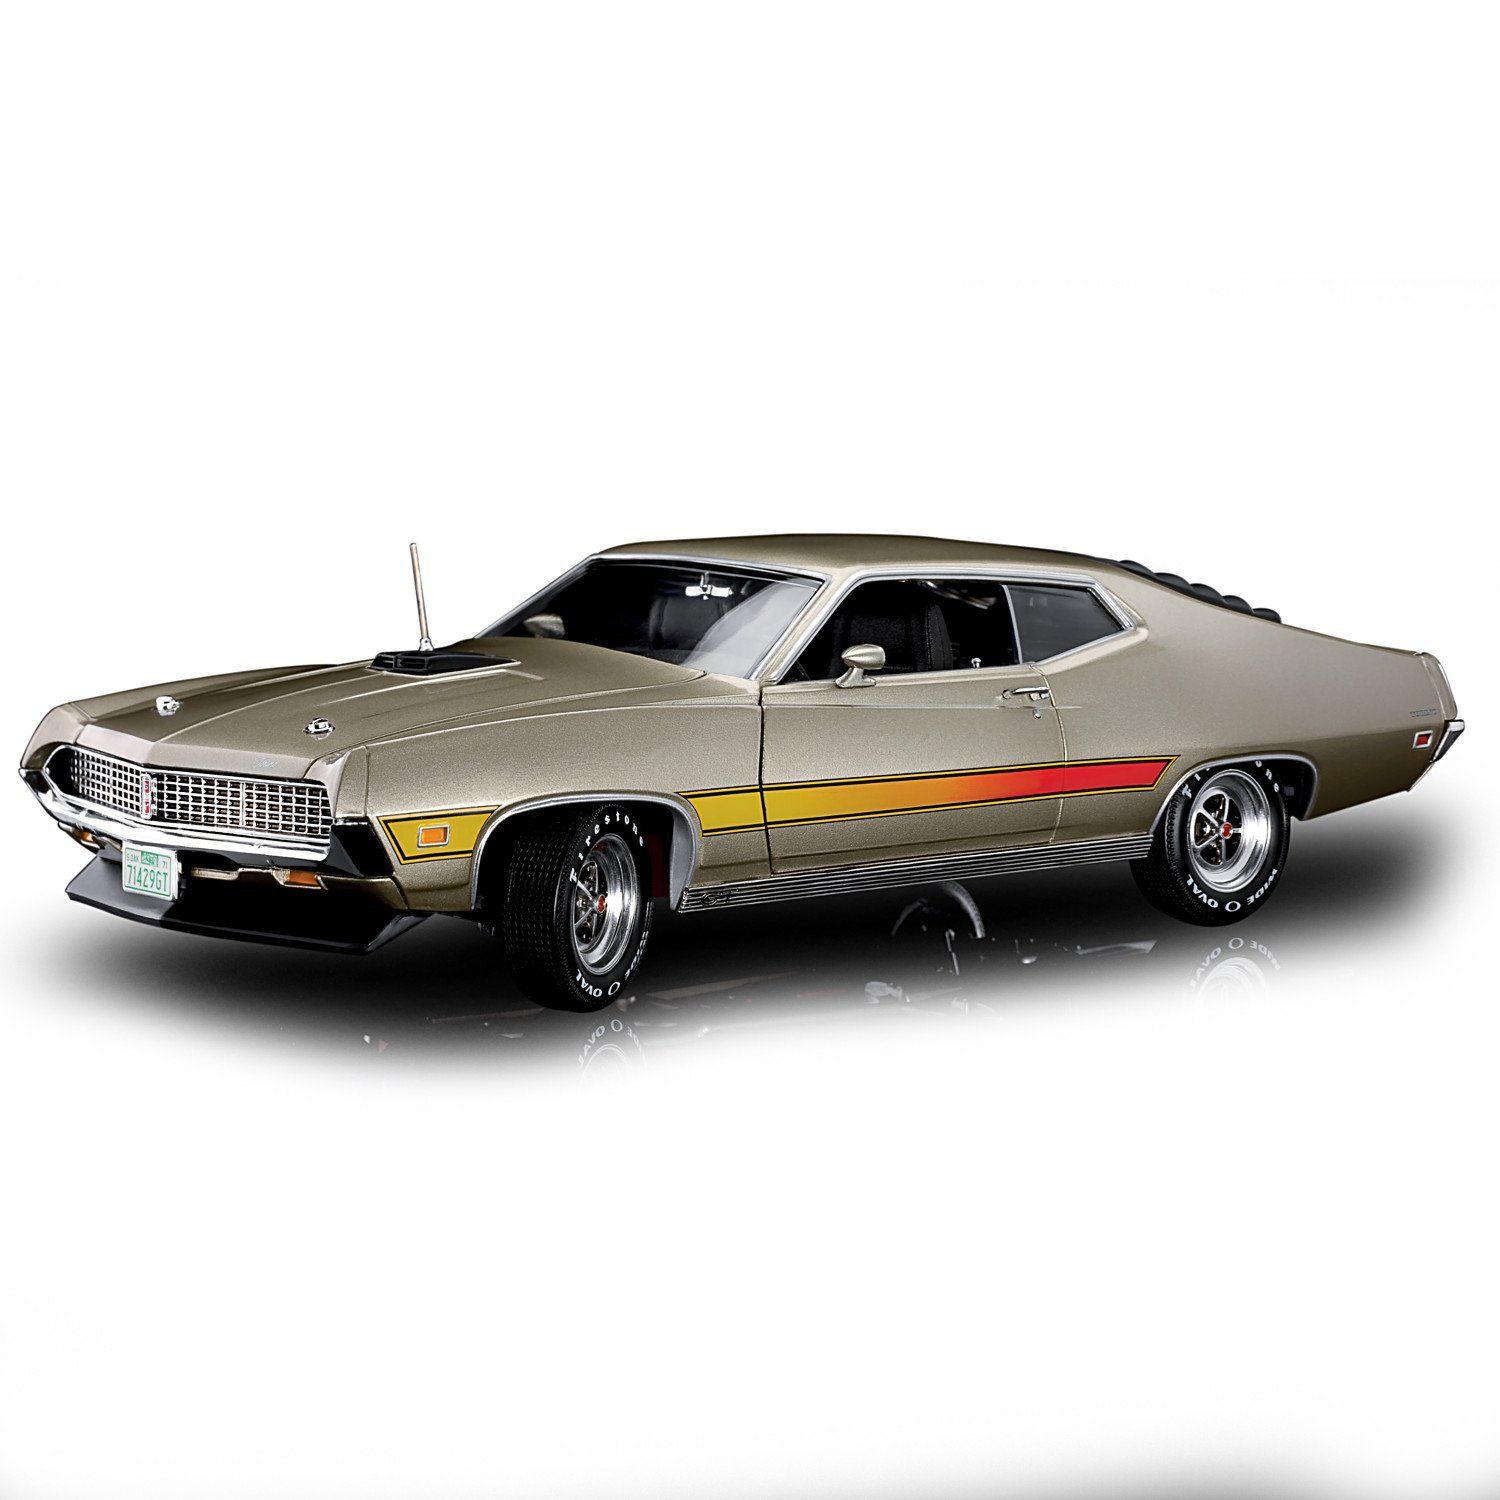 Cheap Diecast Jet Fighters Find Deals On Line Torio My First Plane Complete Set Get Quotations 118 Scale 1971 Ford Torino Gt Cobra Engine Car By The Hamilton